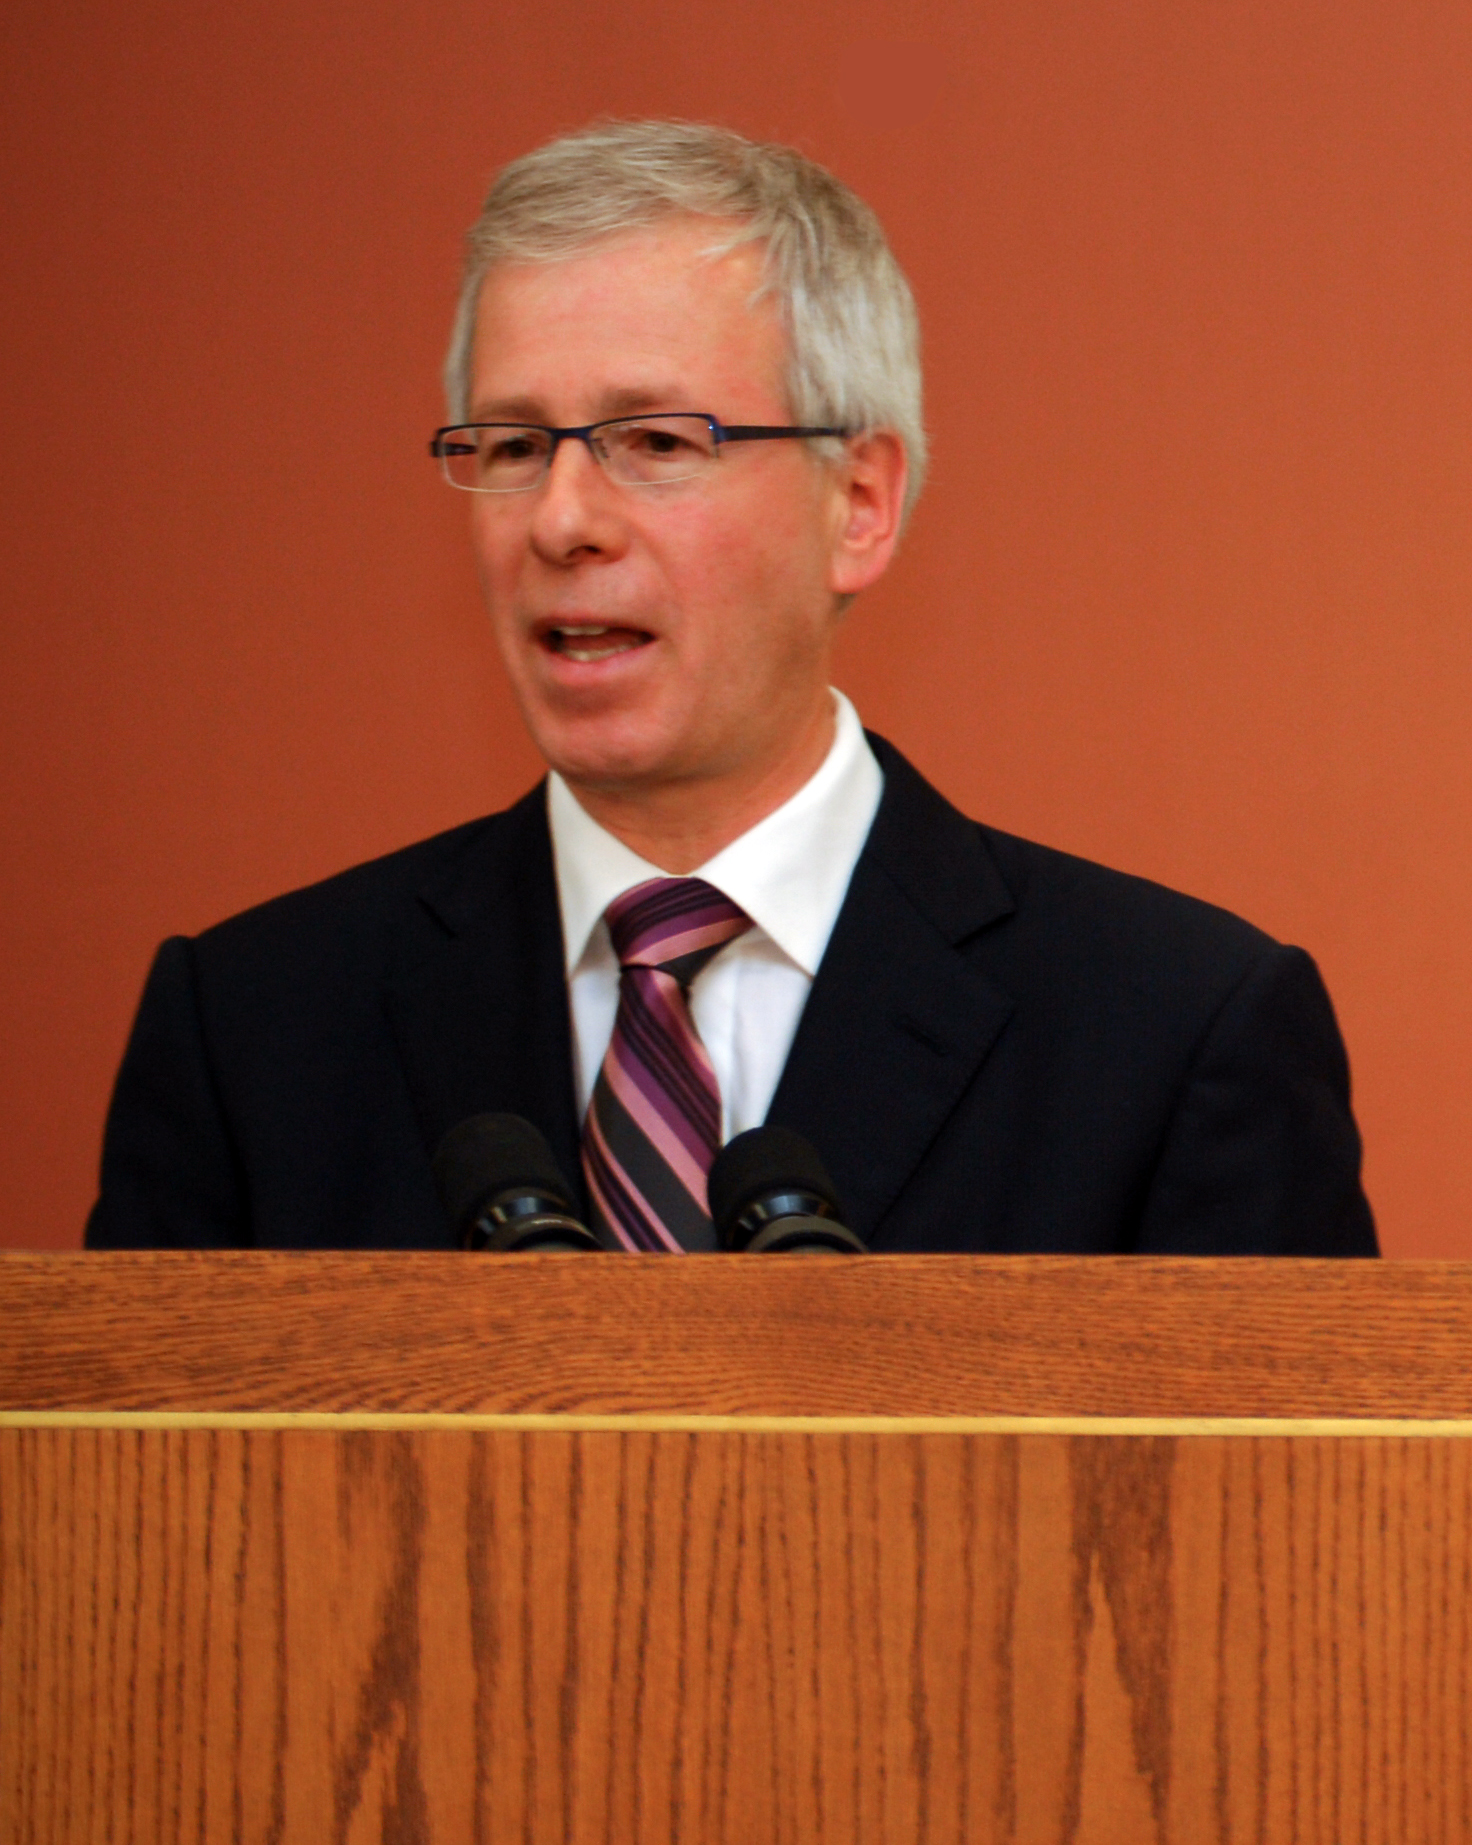 By Tavis Ford (Baitan Nur Mosque Inauguration - Stephane Dion) [CC BY 2.0 (https://creativecommons.org/licenses/by/2.0)], via Wikimedia Commons